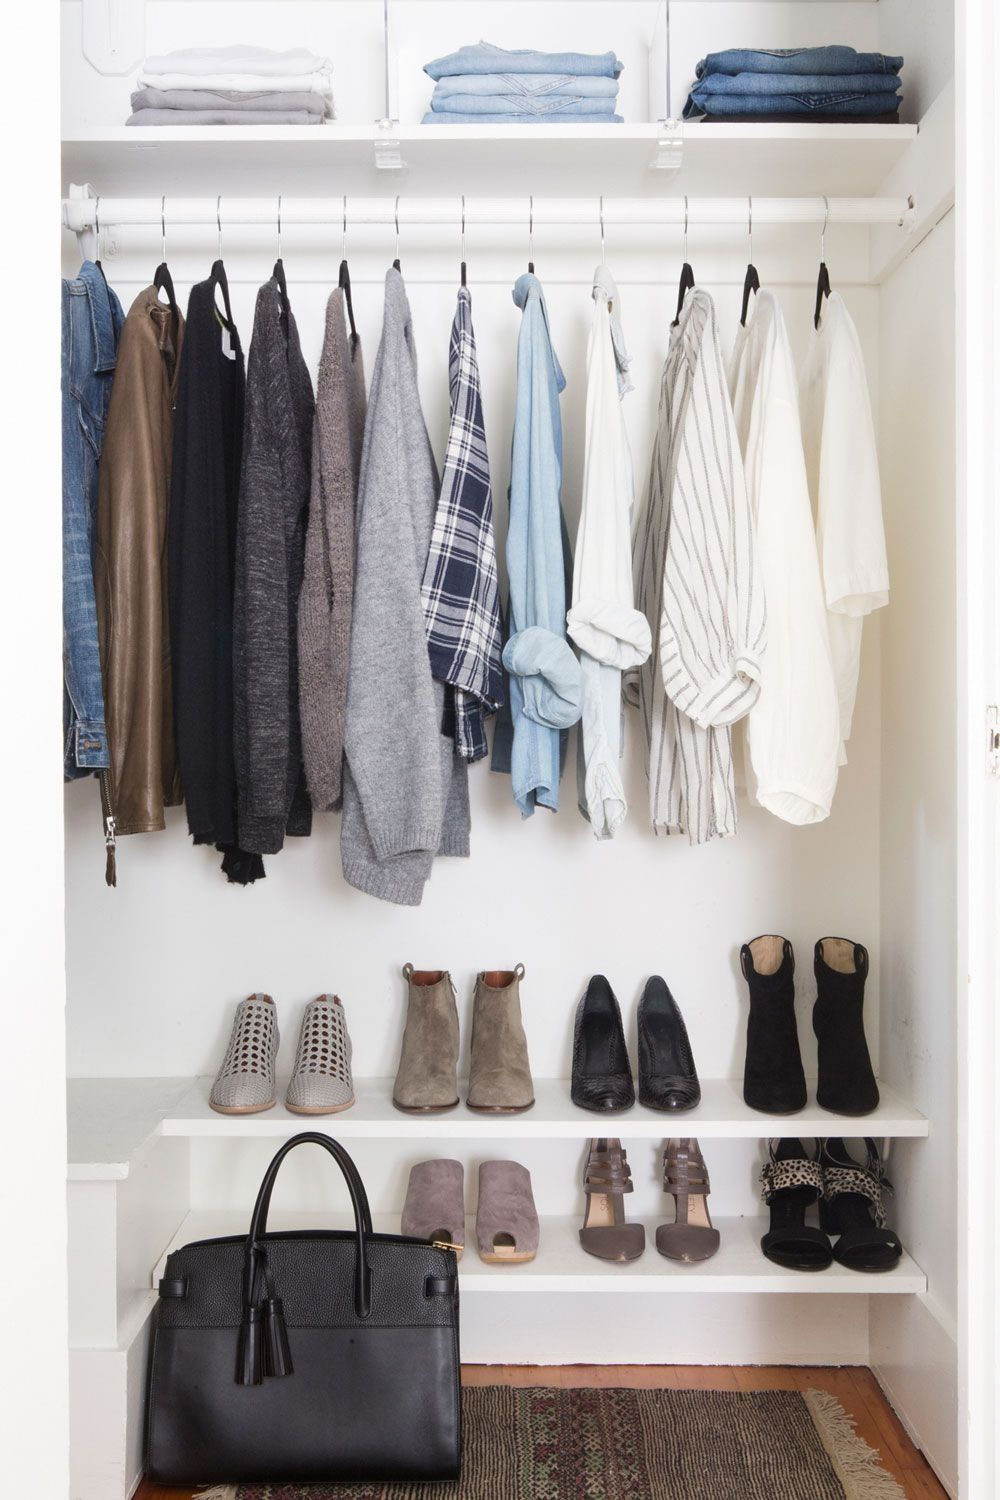 5 Simple Steps To A Streamlined + Stylish Closet Via Rue Magazine Home Design Ideas